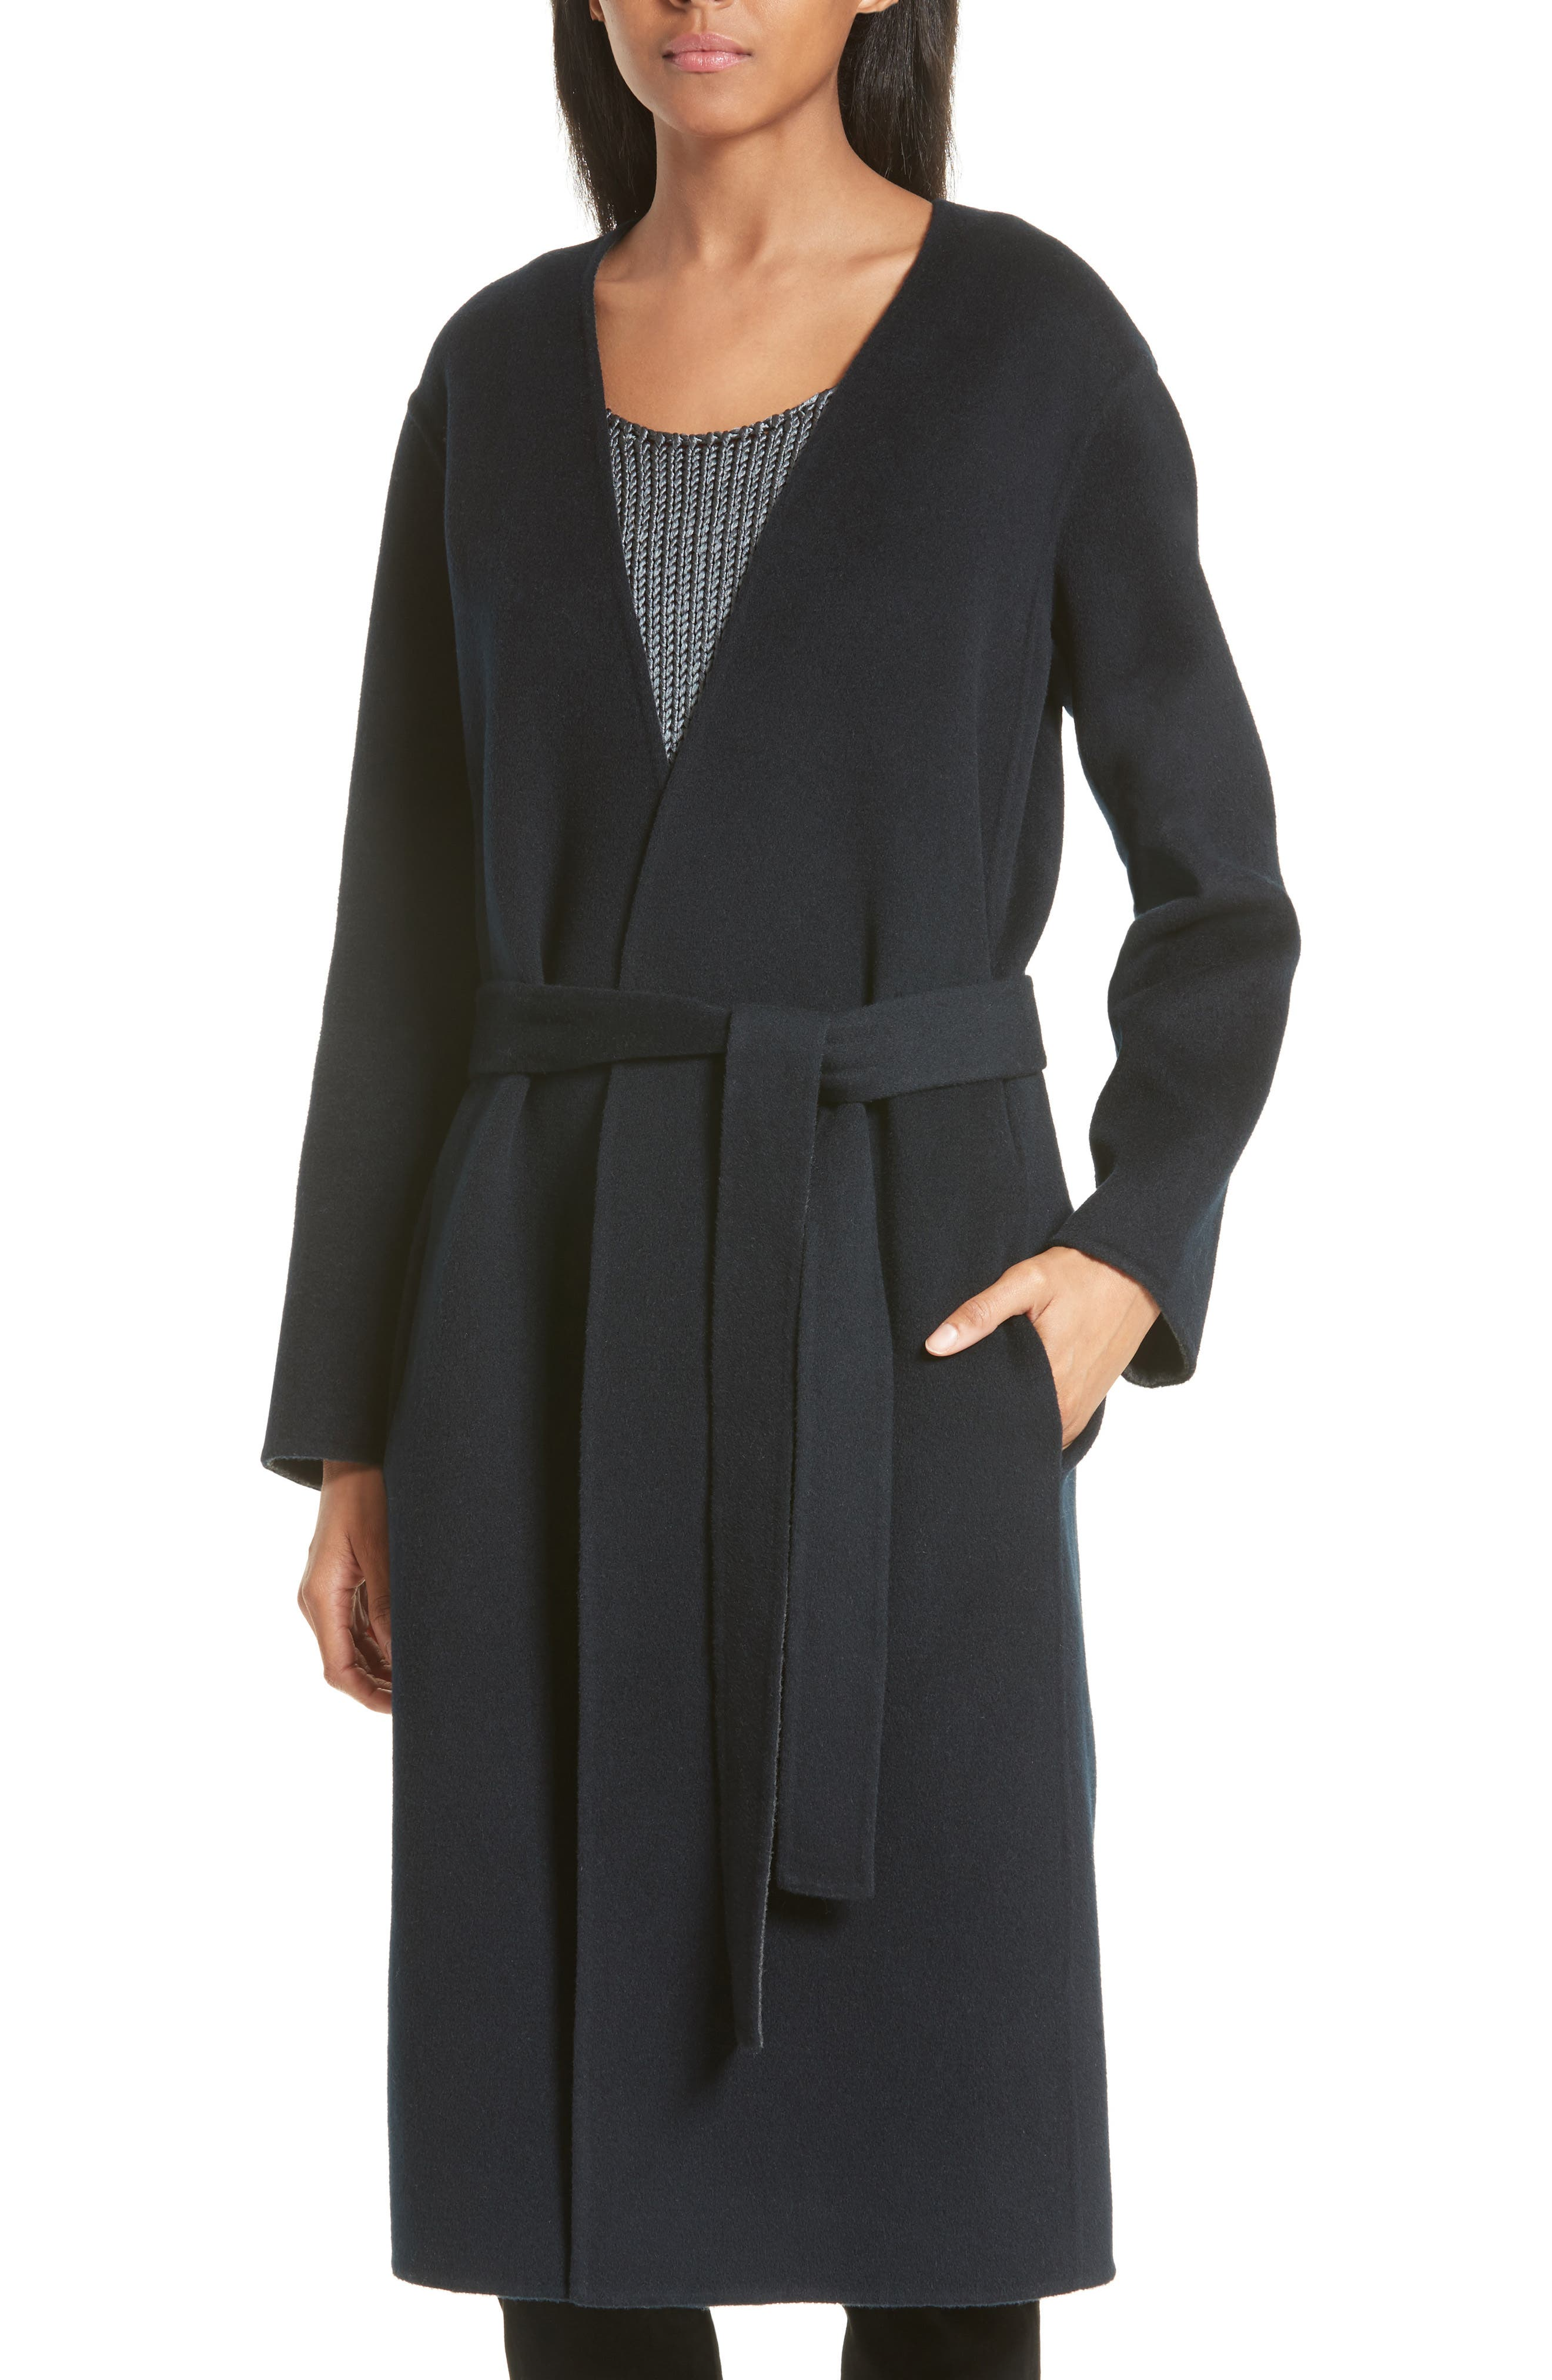 Reversible Wool & Cashmere Belted Coat,                             Alternate thumbnail 5, color,                             464